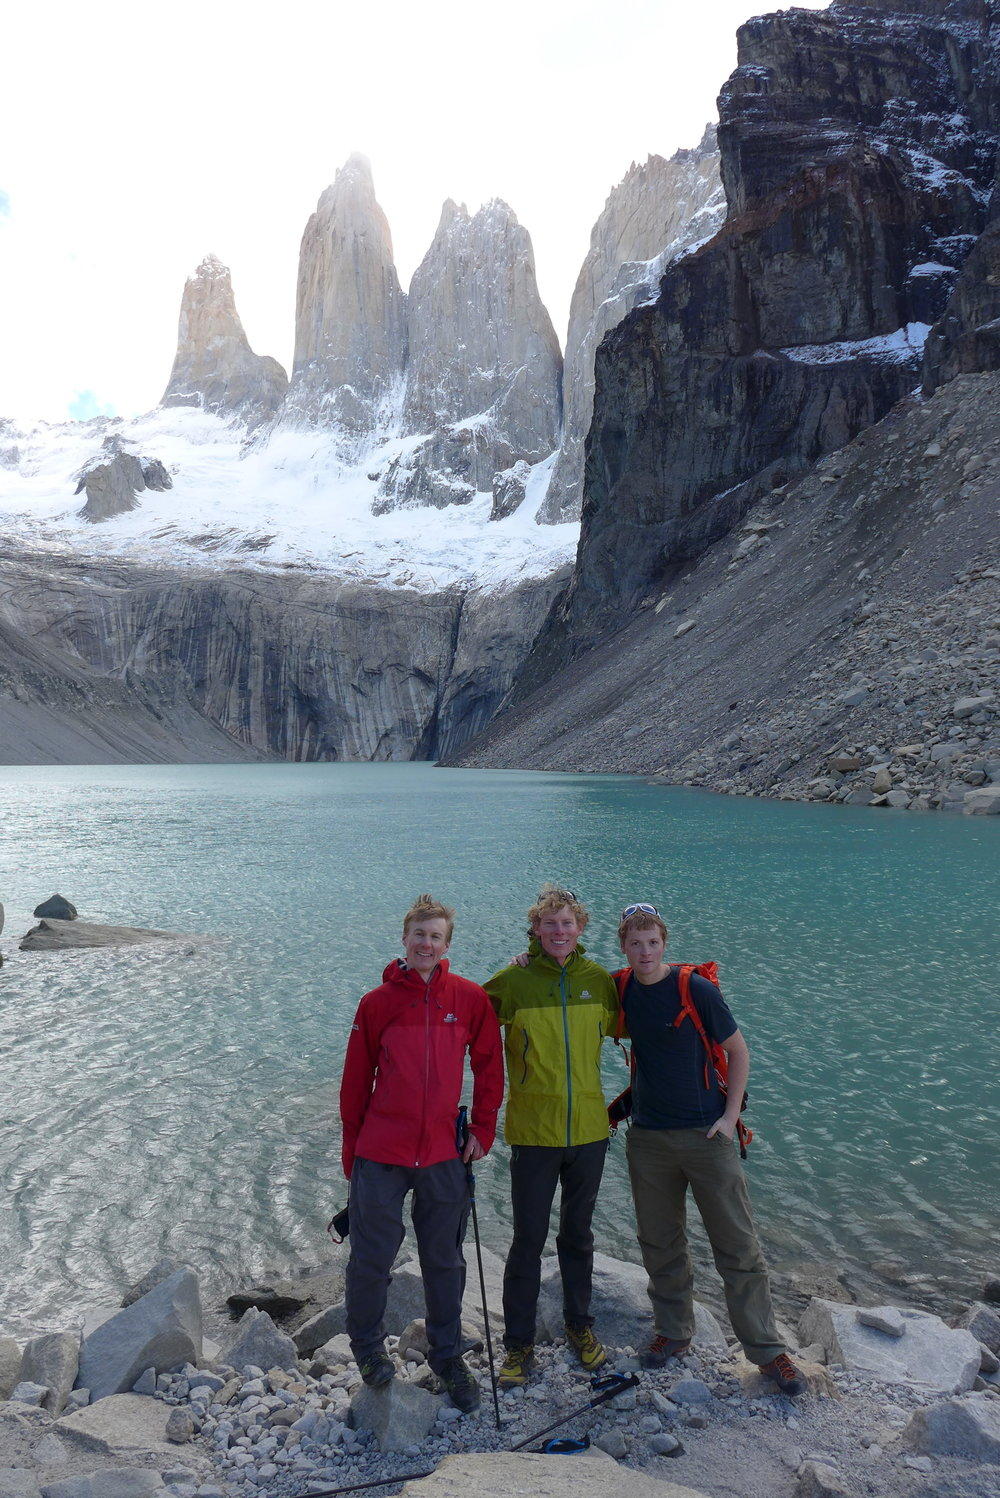 Tony, me and Calum beneath the three Torres del Paine. Photo: Calum Muskett